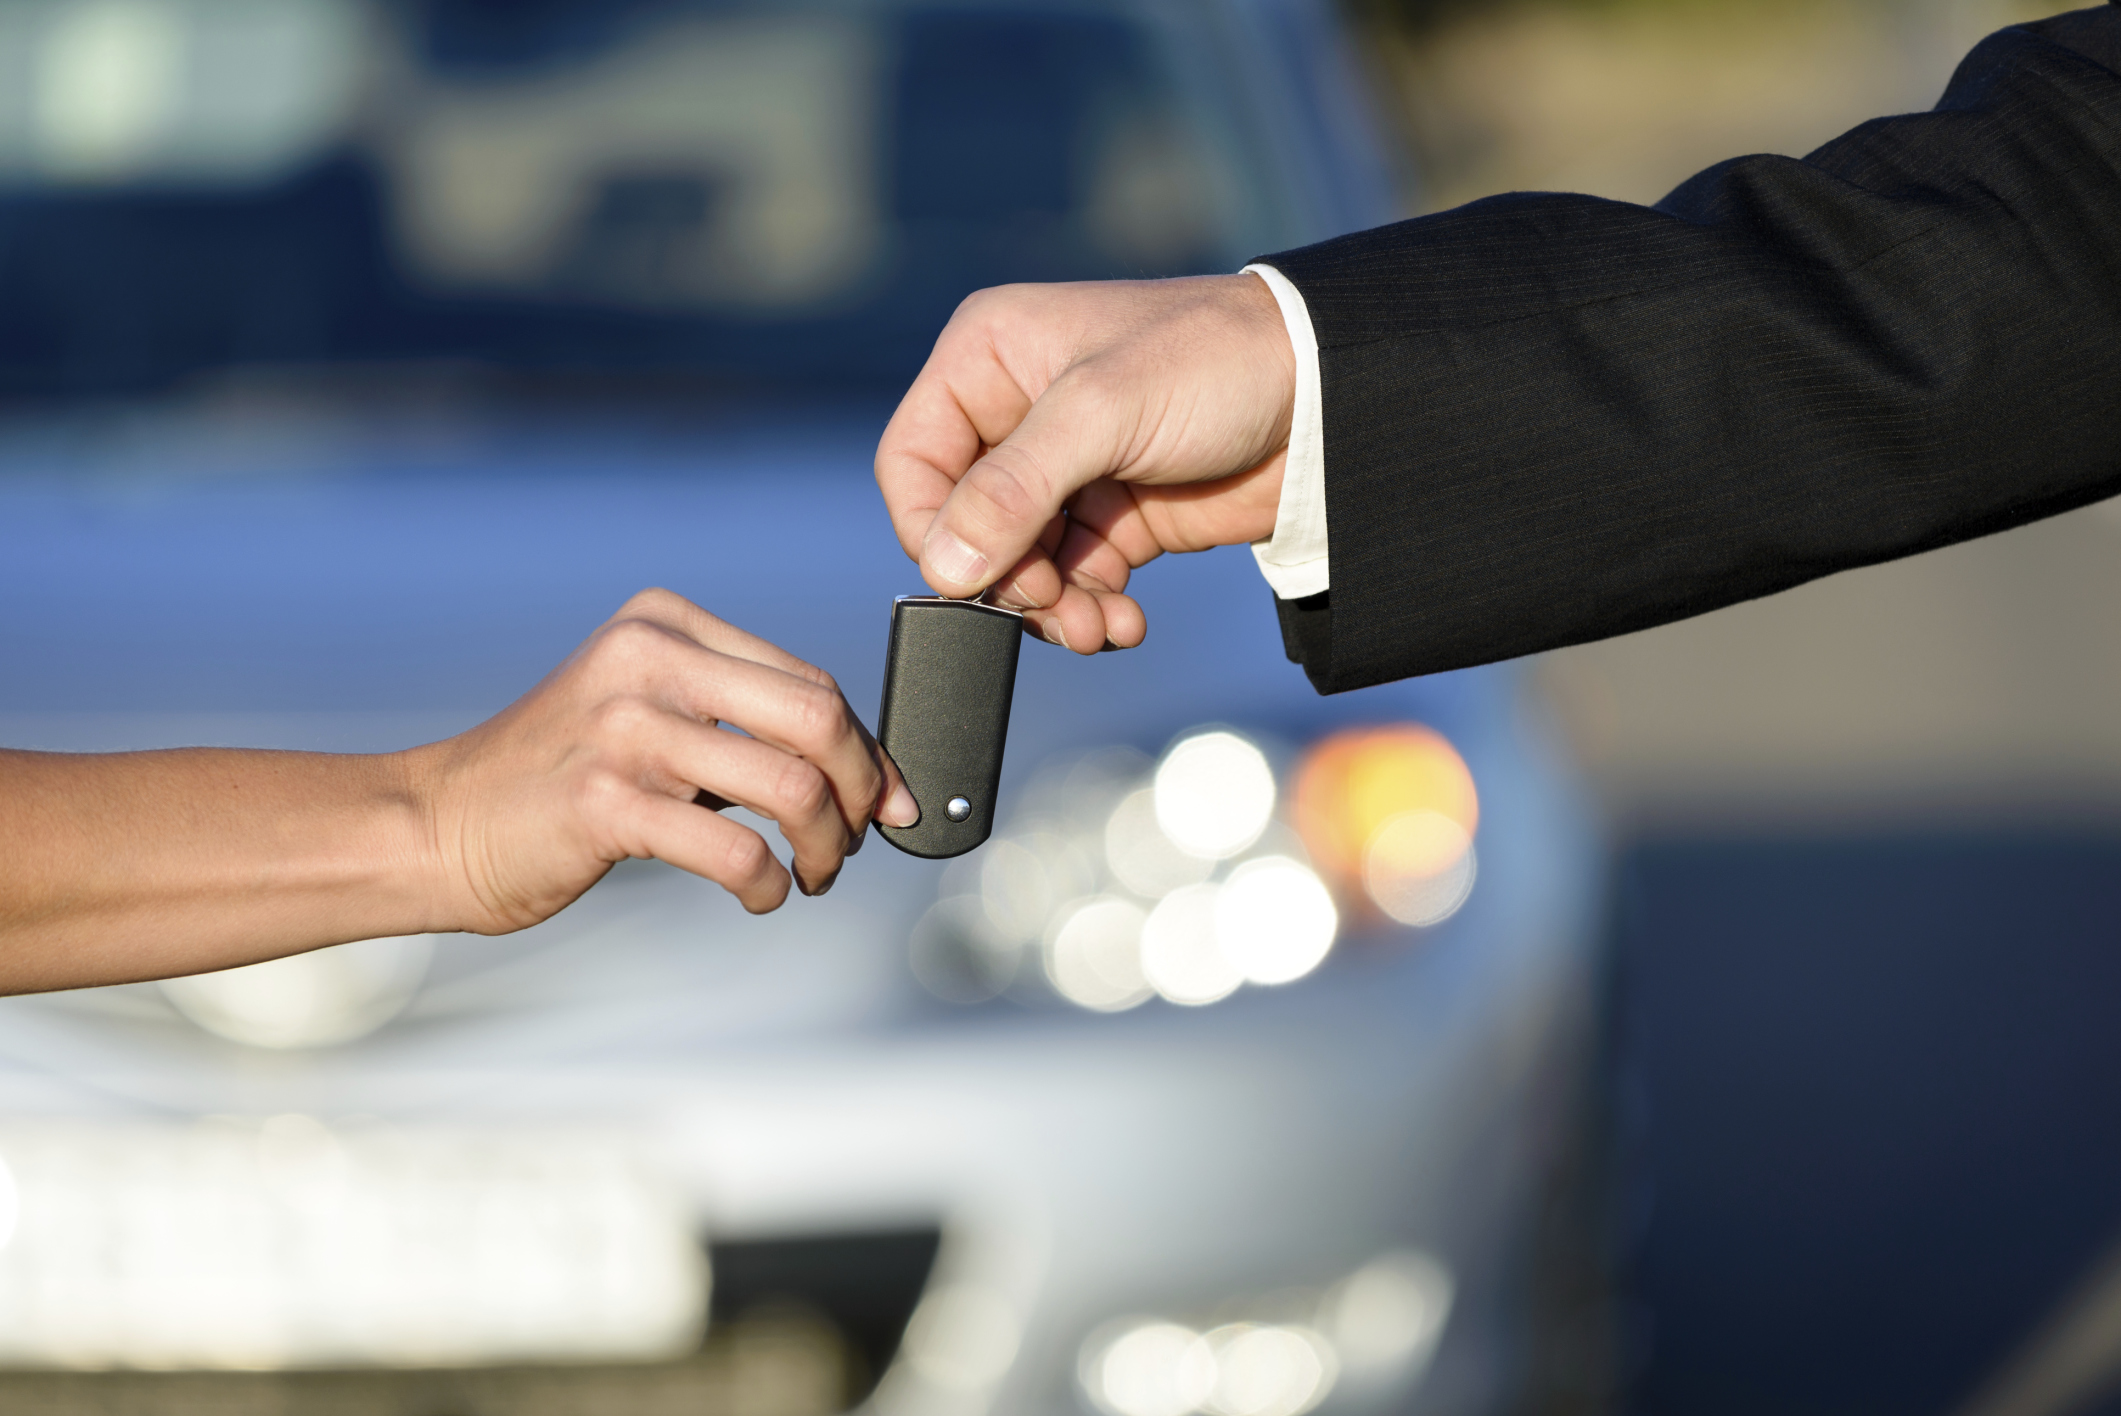 Choosing a used car deal over a test drive